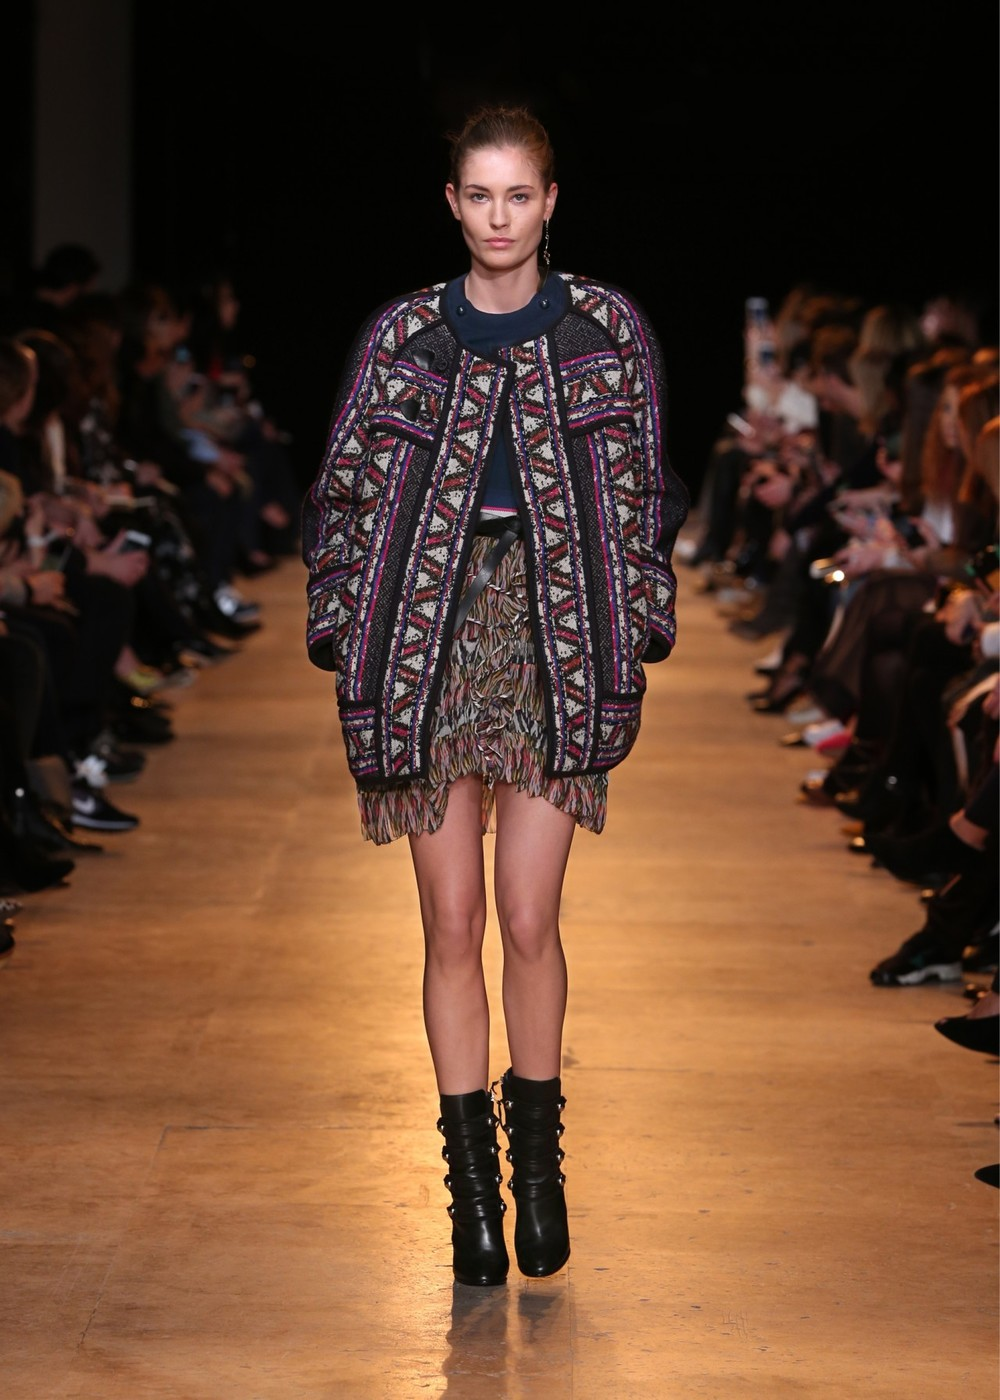 collection_fiche_origin_isabel_marant_fw15_look7_d07c7.jpg